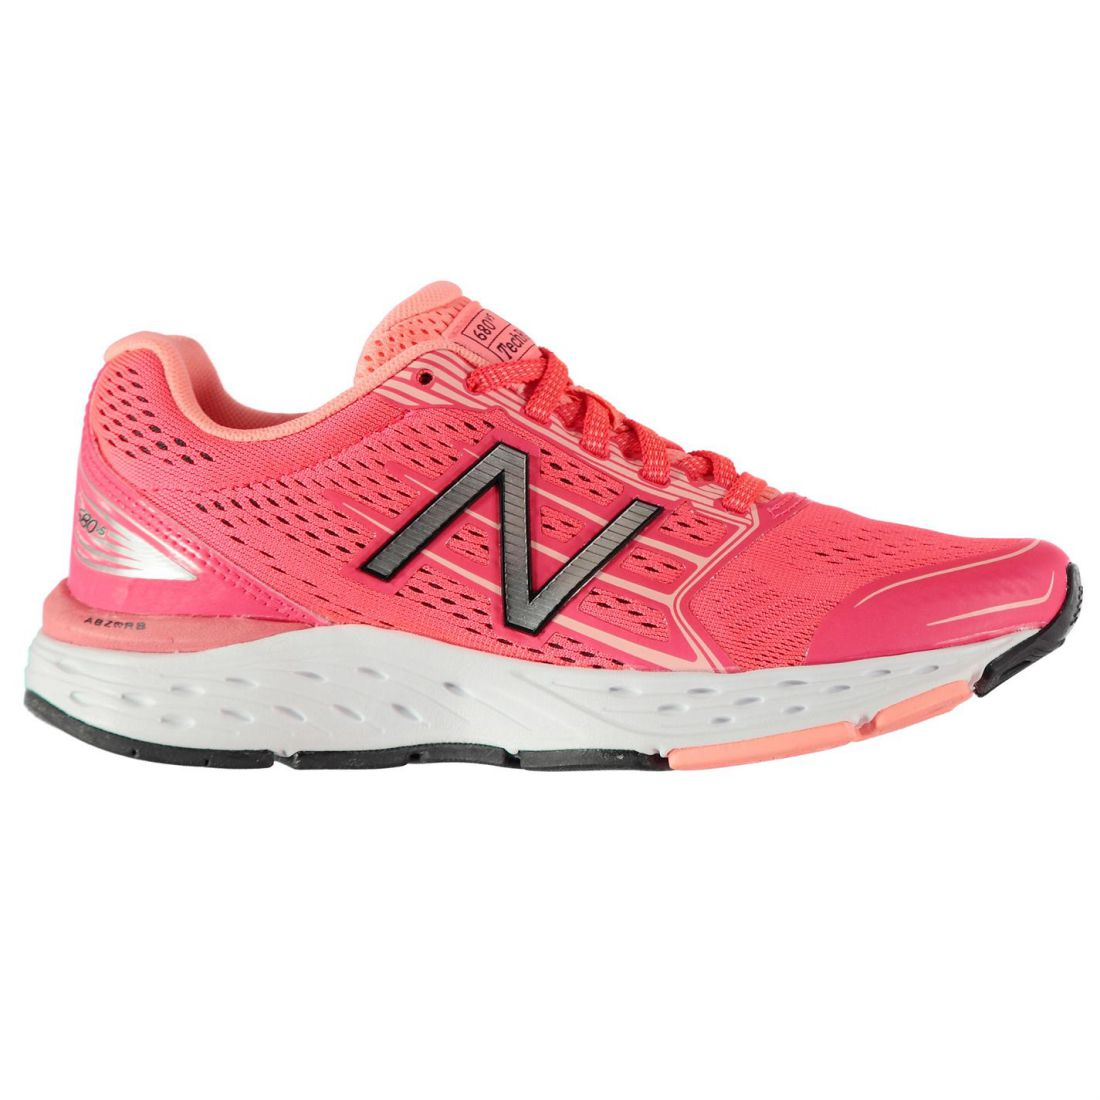 Details about New Balance Women's Sz 11 Salmon Red Fresh Foam 1080 V2 Running Walking Shoes